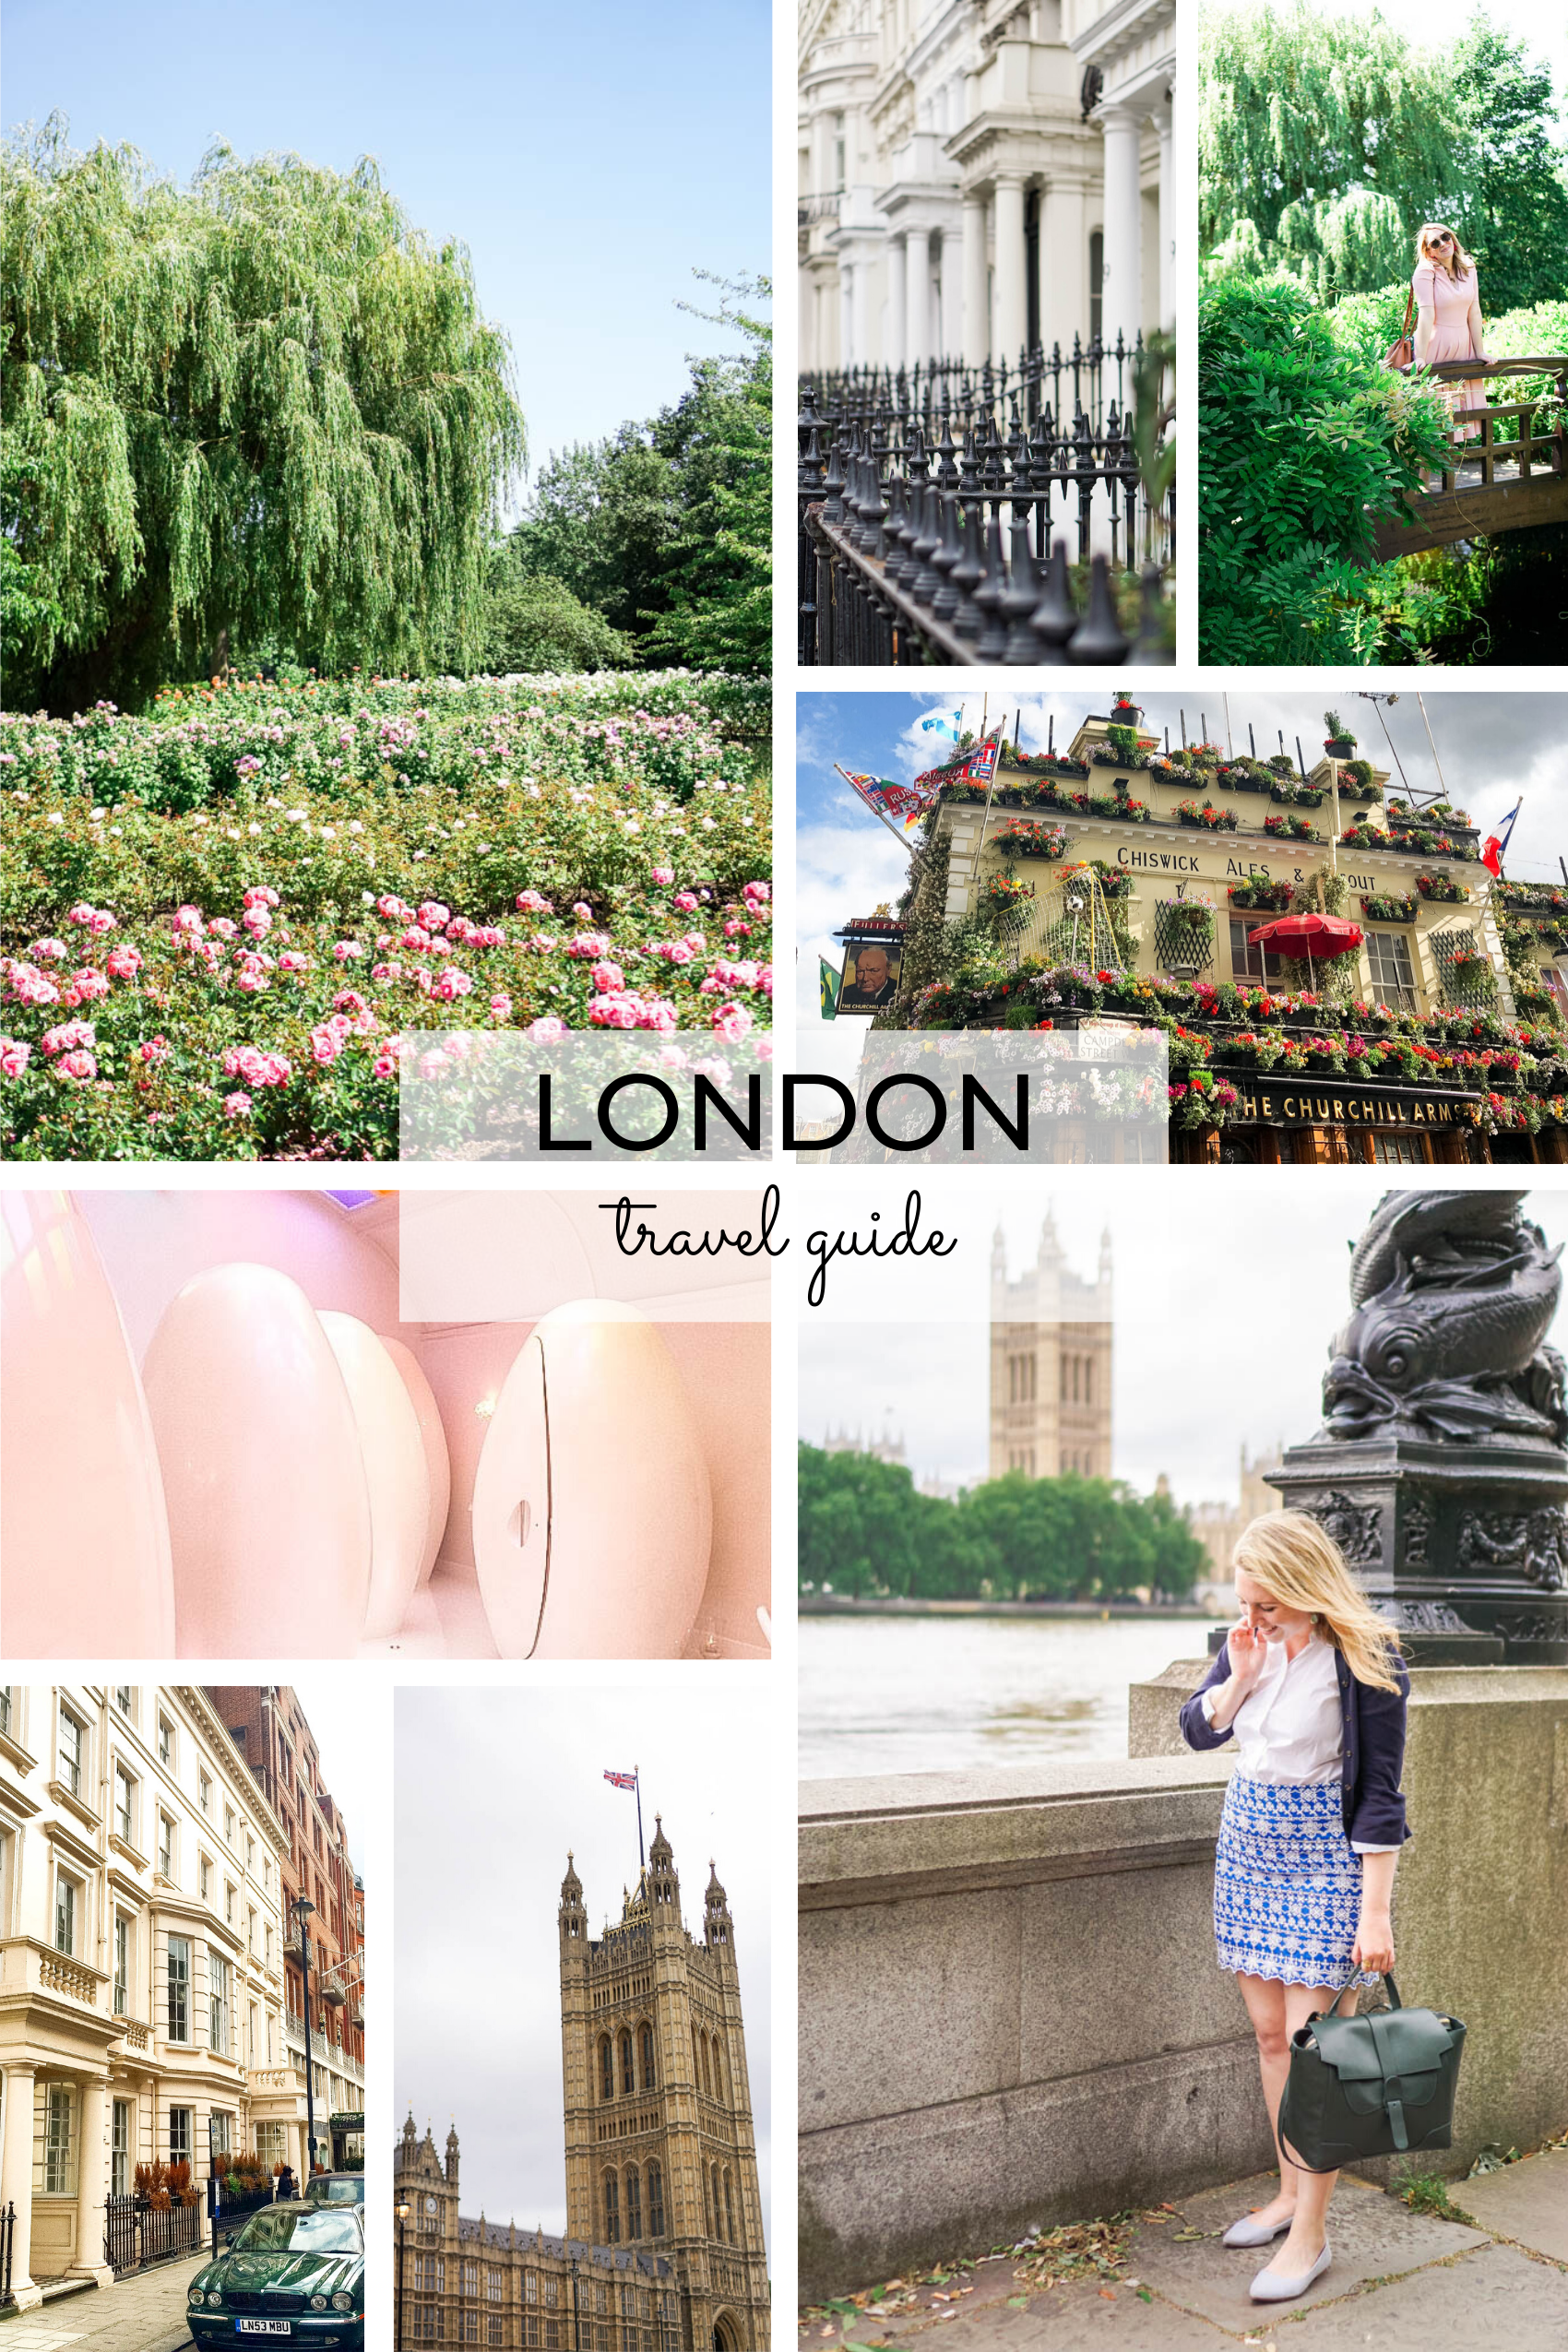 London Travel Guide: where to stay in London, where to eat in London, what to do in London | London City Guide: best restaurants in London, best hotels in London, best activities in London | What to do on your first trip to London